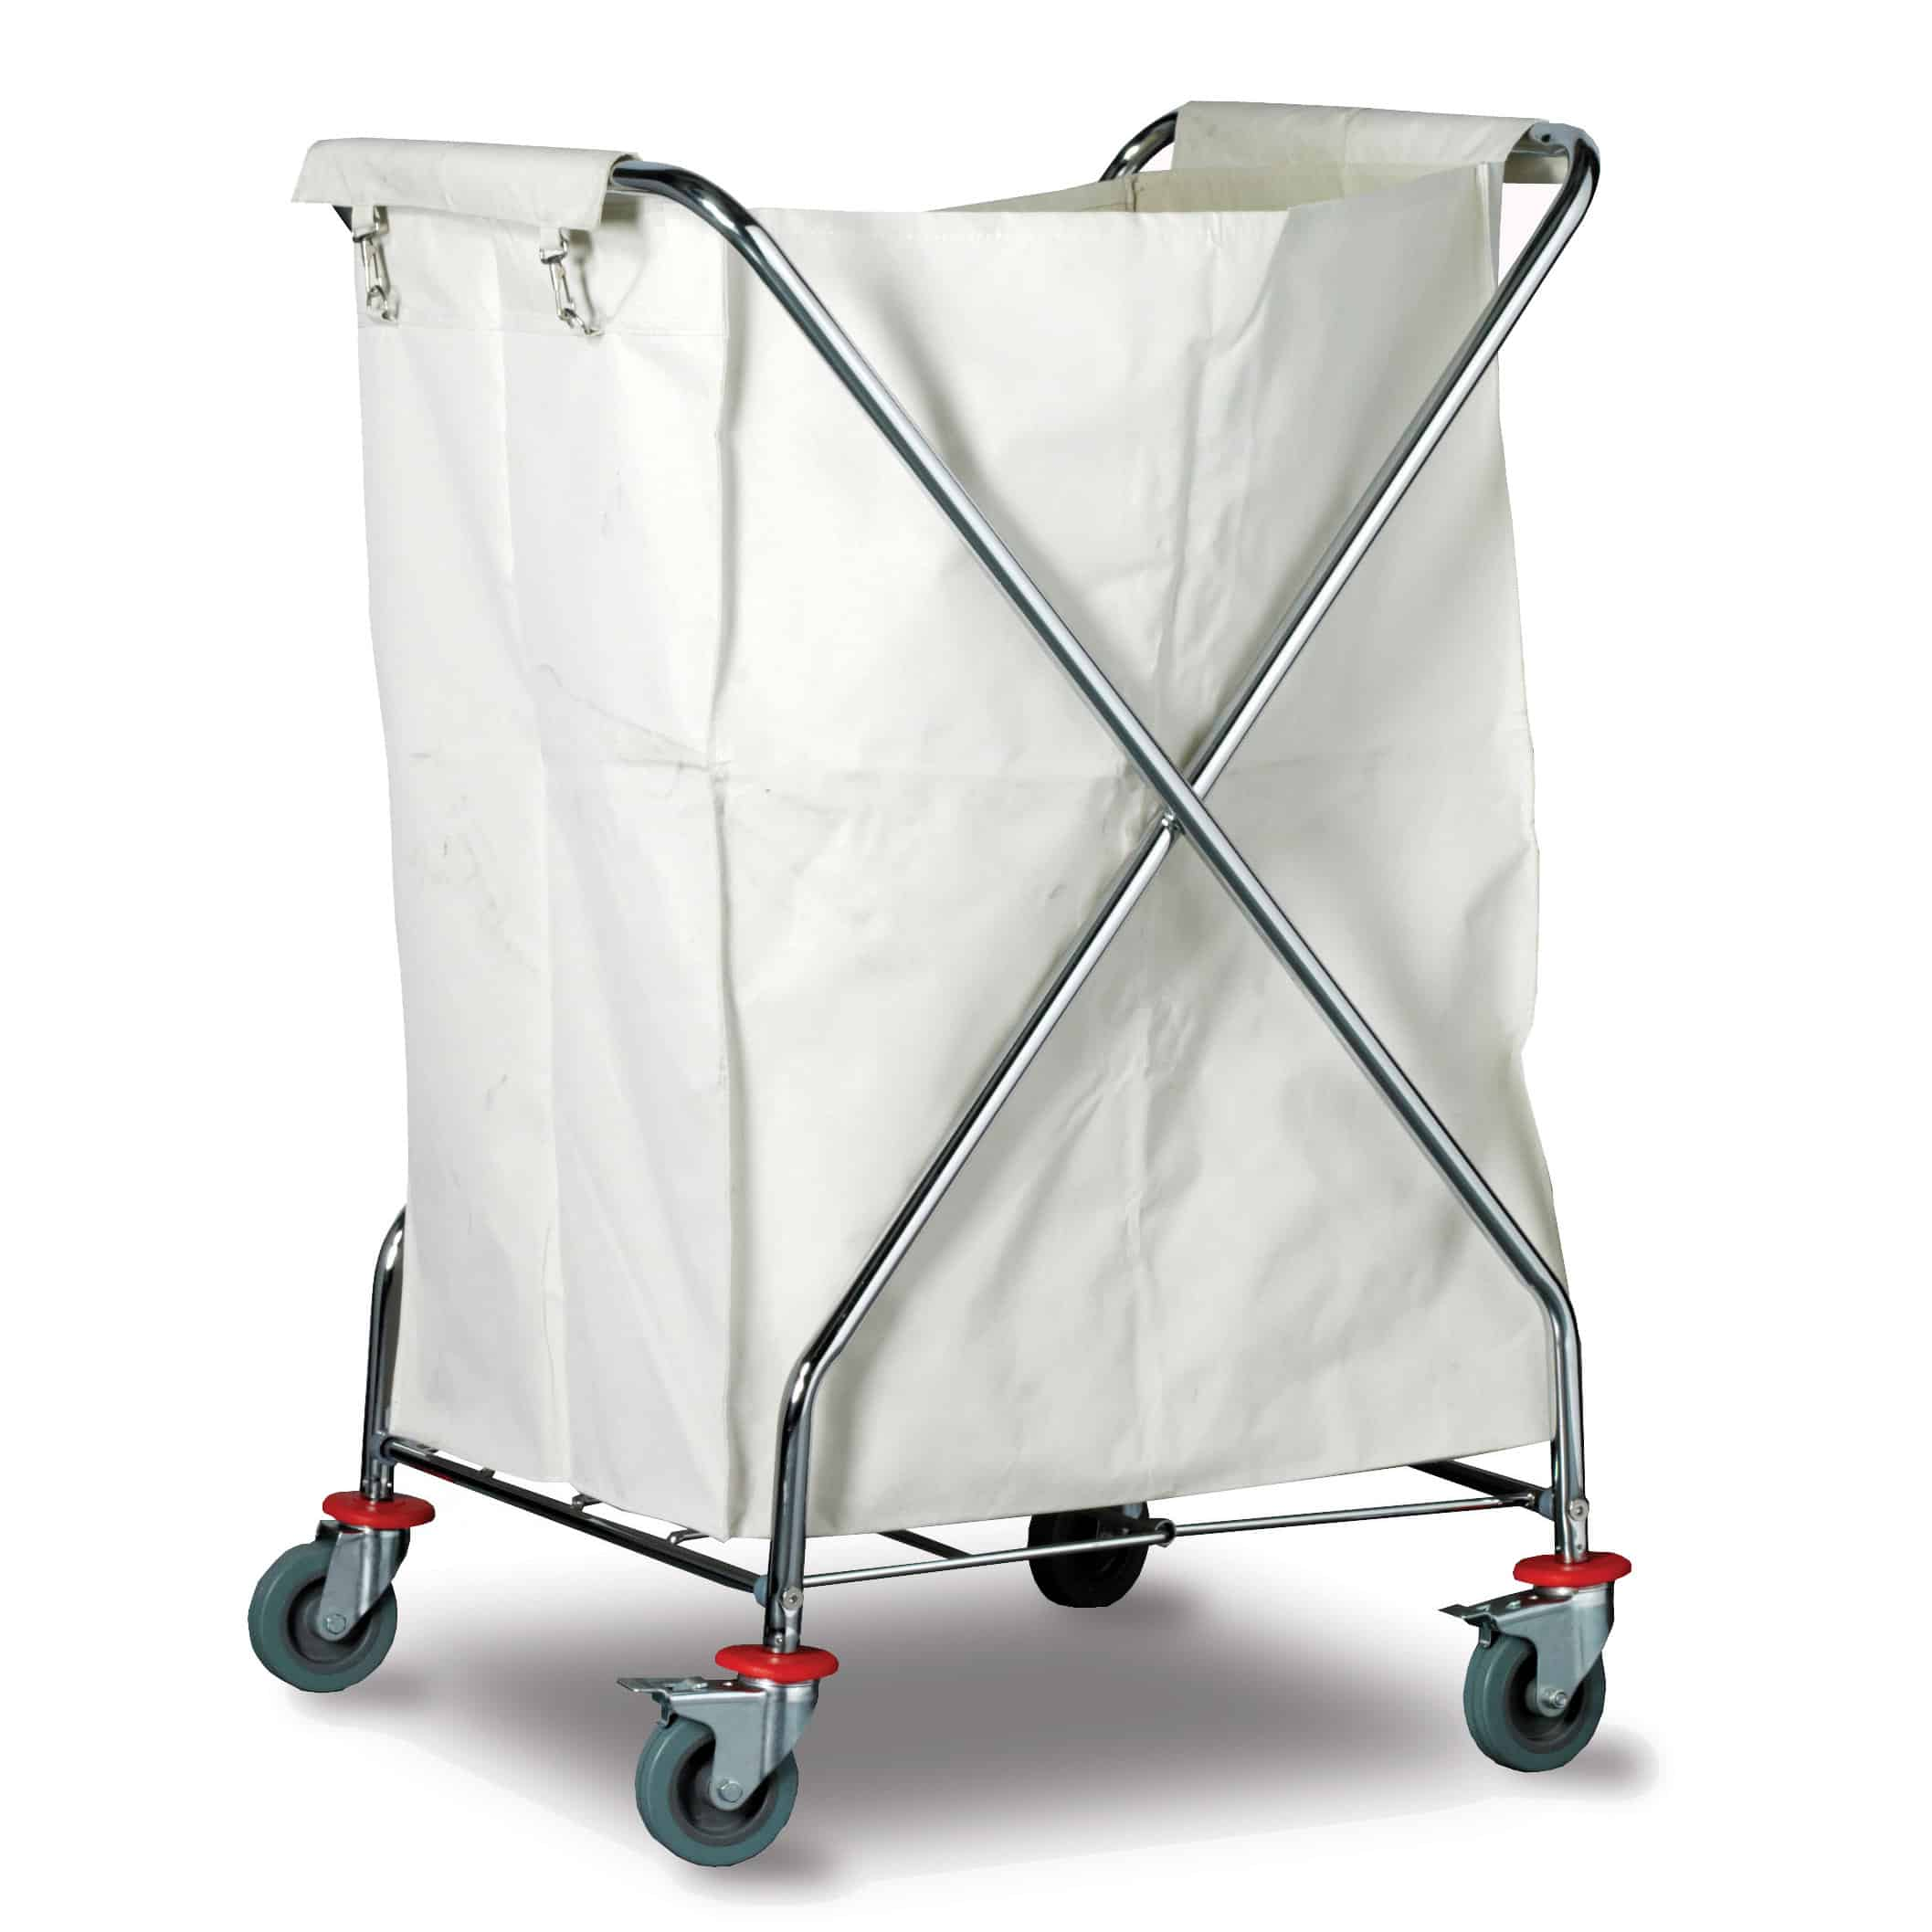 Chrome Plated Steel Folding X Laundry Trolley